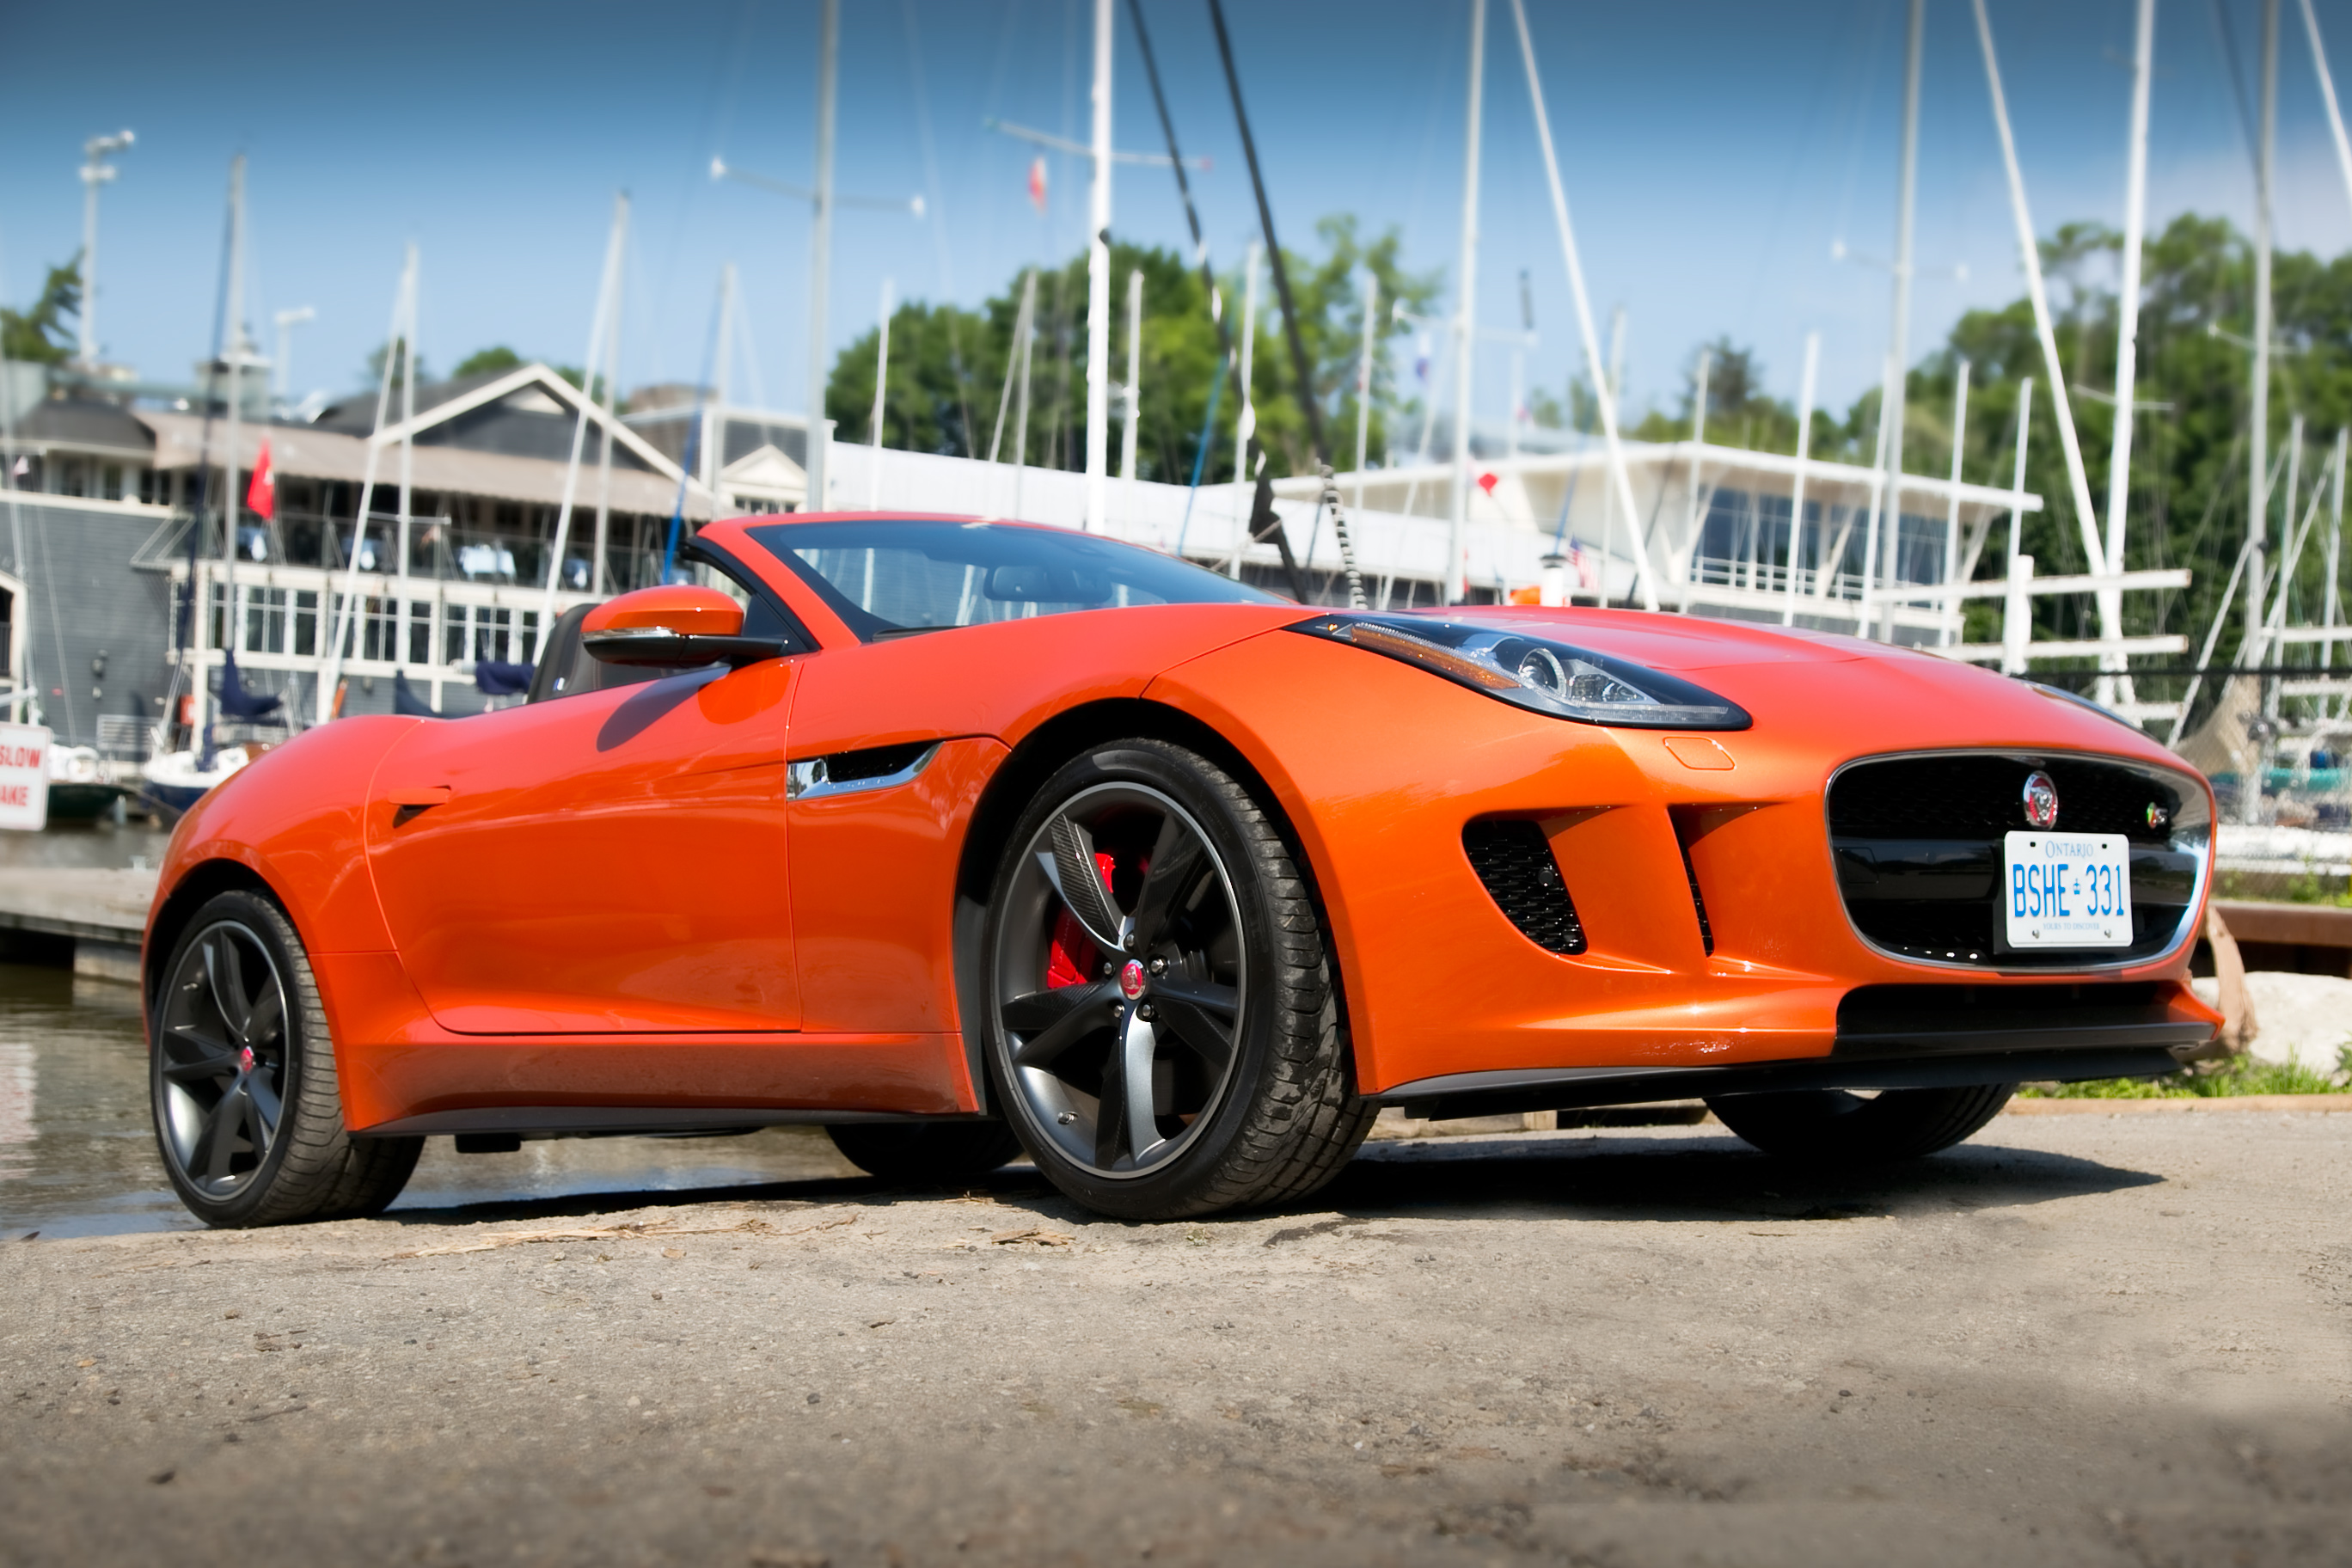 Test drive: Jaguar's 495 hp F-type V8 S serves up near open-aired perfection